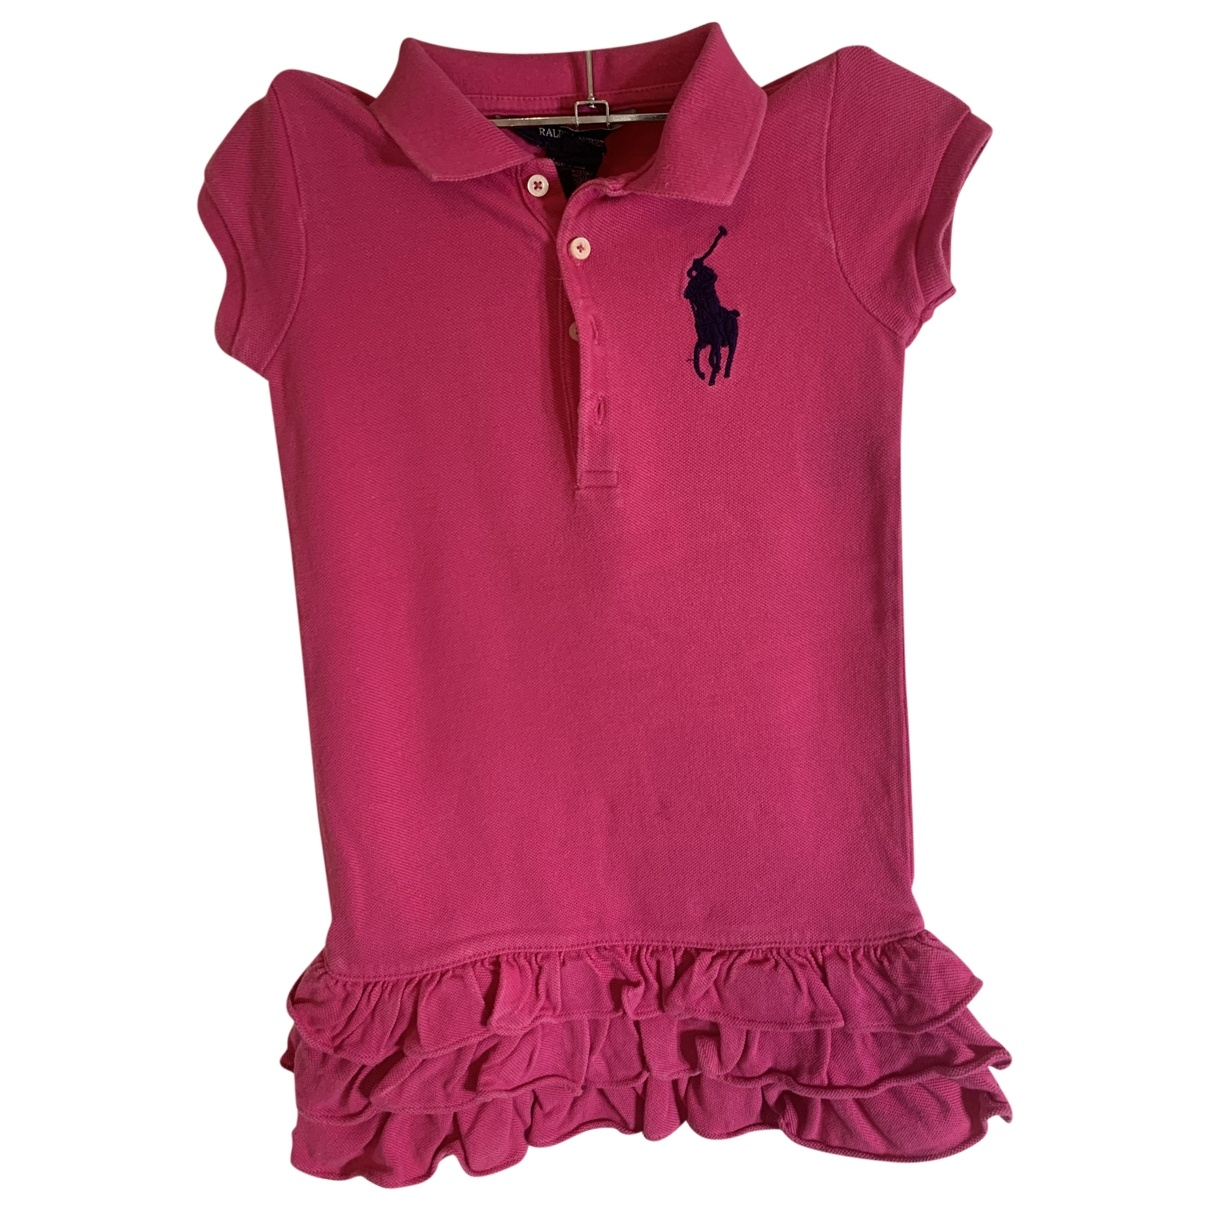 Ralph Lauren \N Pink Cotton dress for Kids 4 years - up to 102cm FR